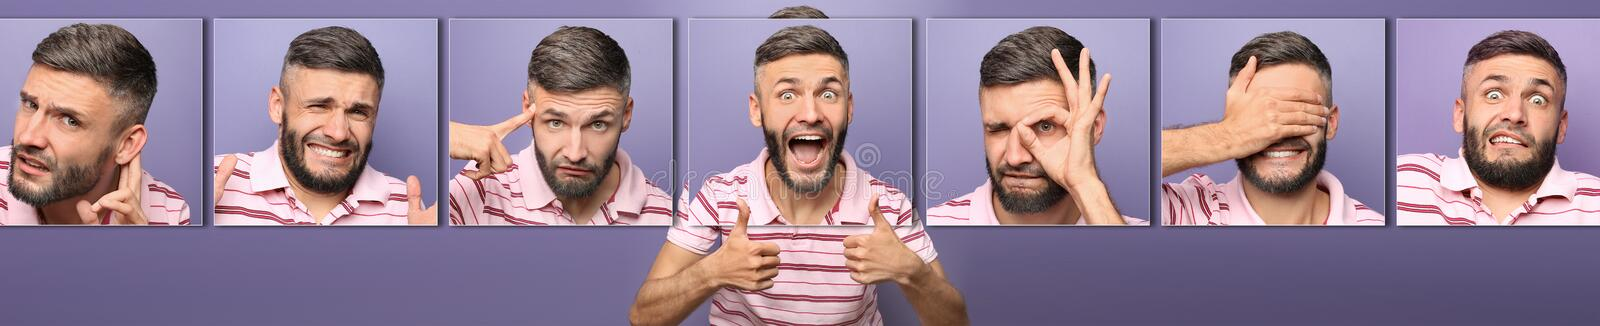 Happy man showing thumb-ups gesture on color background royalty free stock images